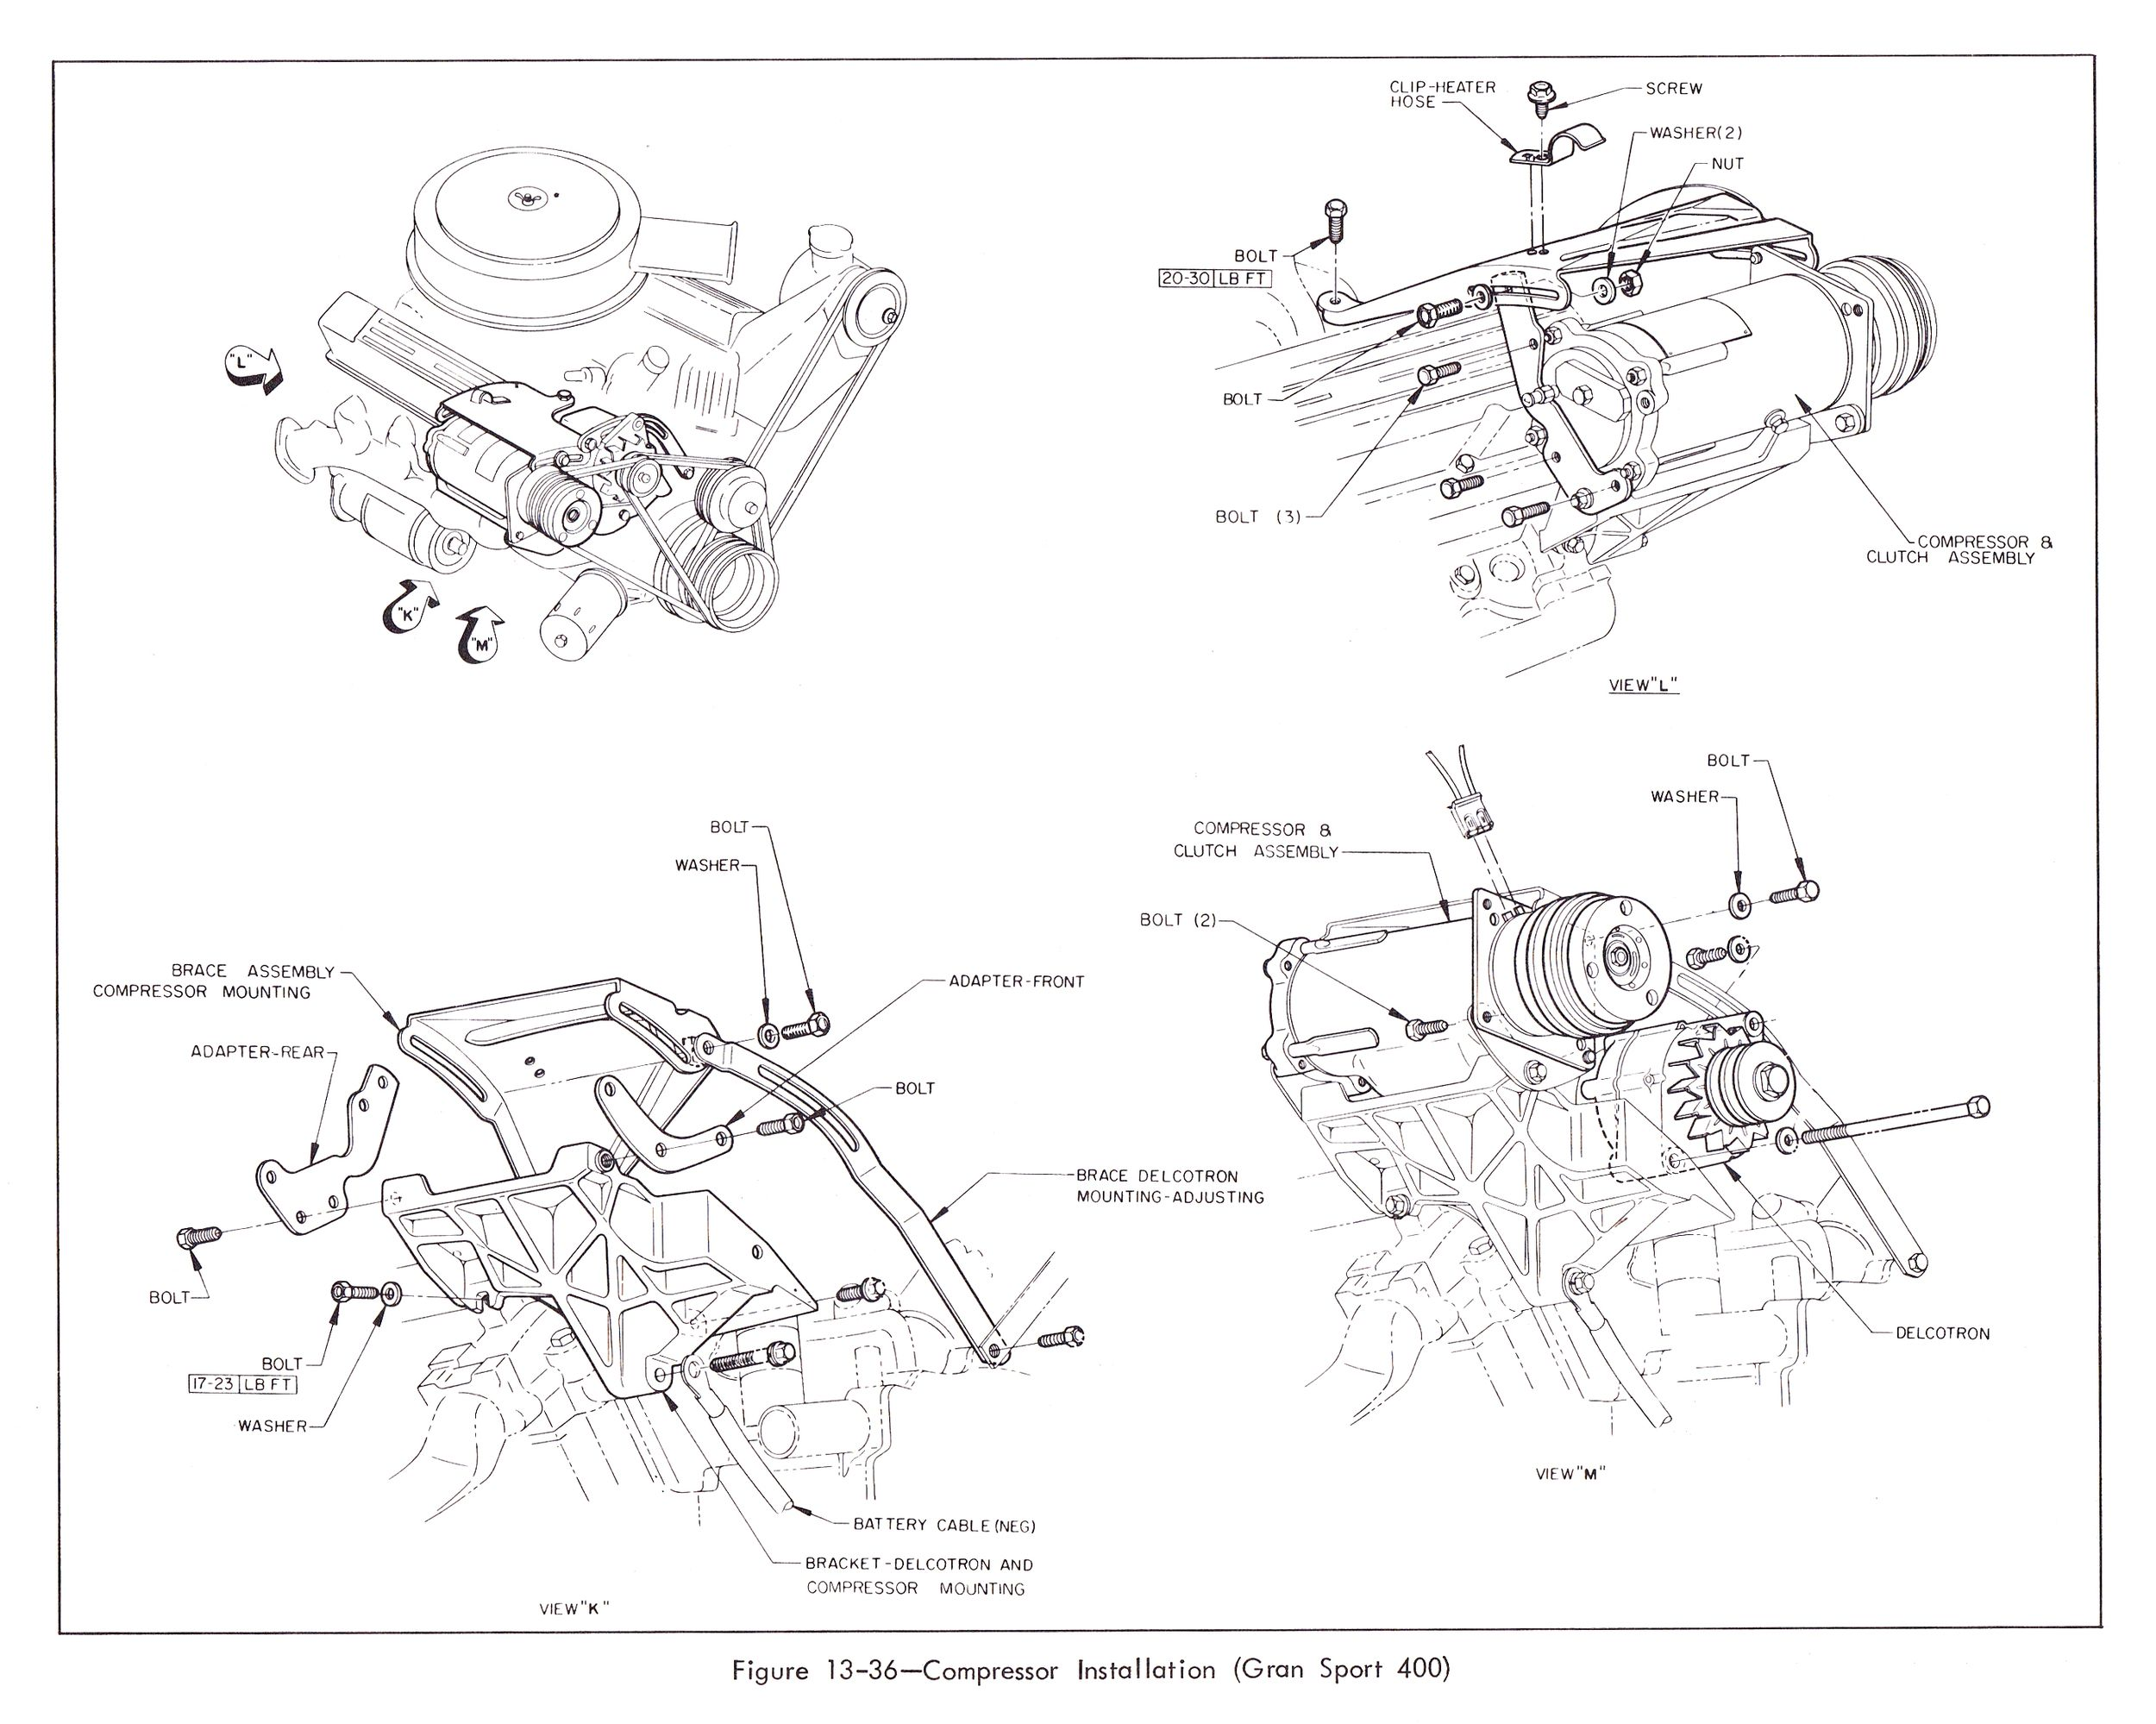 Olds Cutlass Wiring Diagram